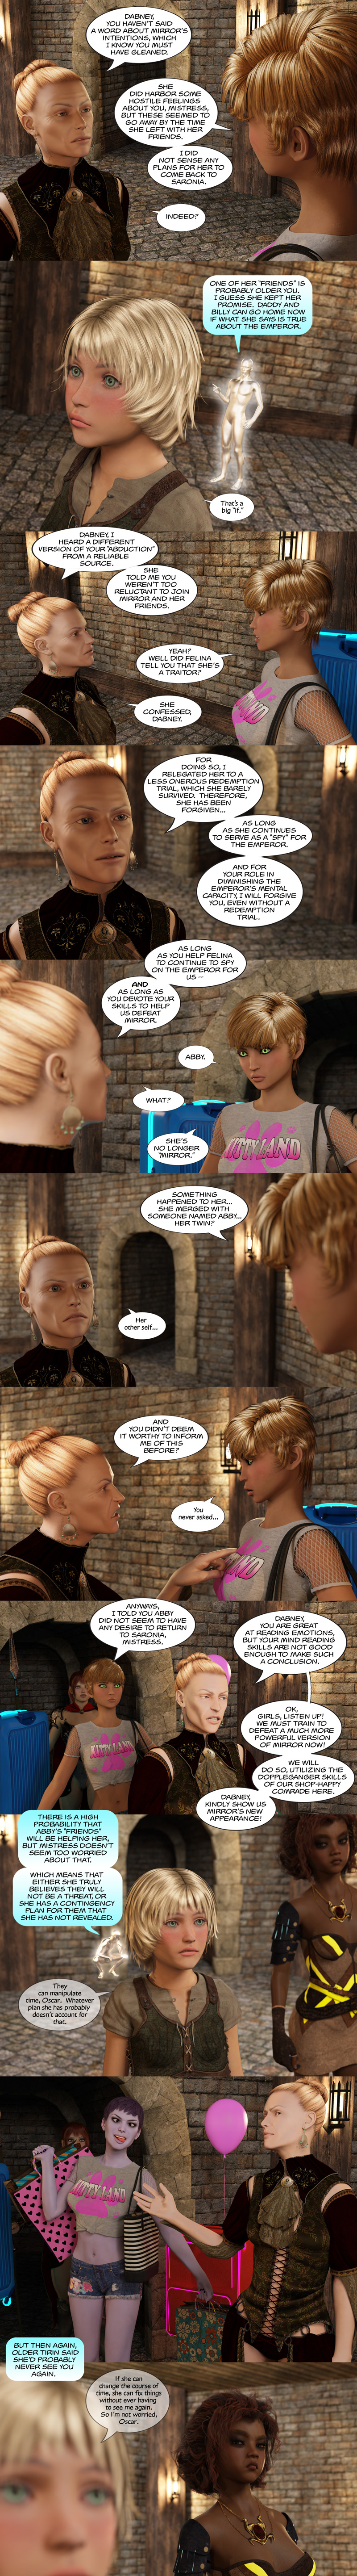 Chapter 16, page 6